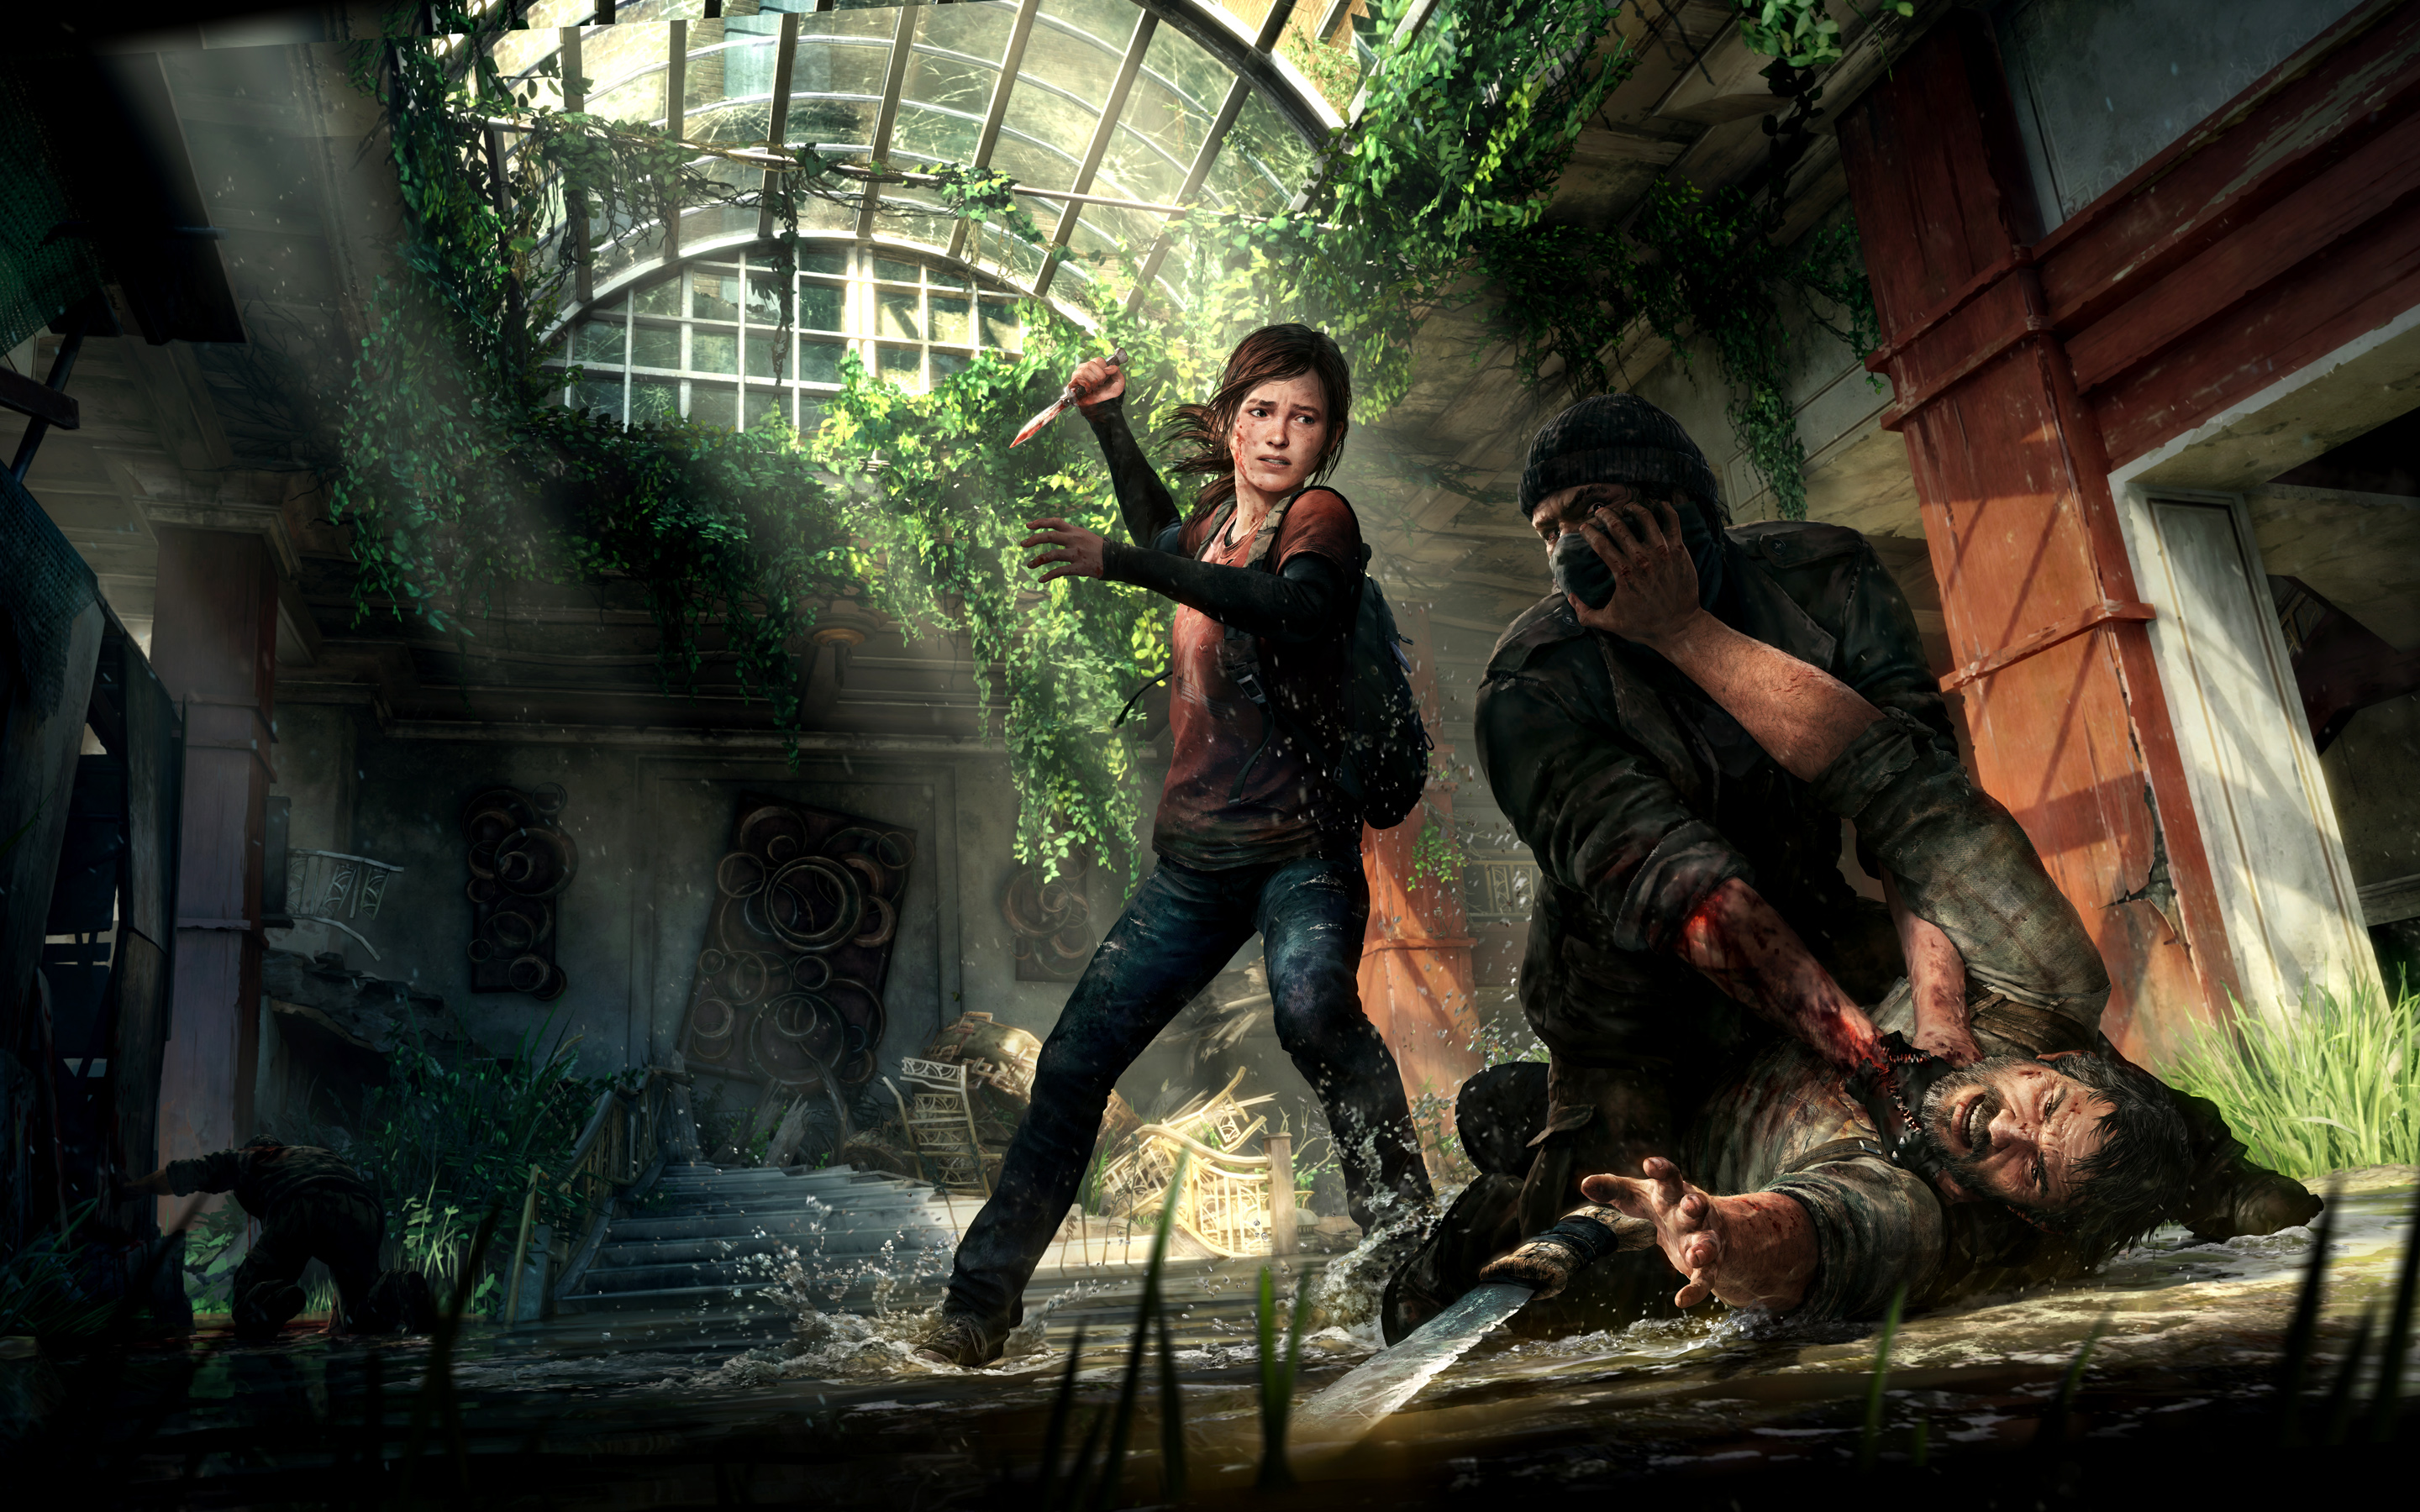 The Last of Us PS3 Game Wallpapers HD Wallpapers 2880x1800